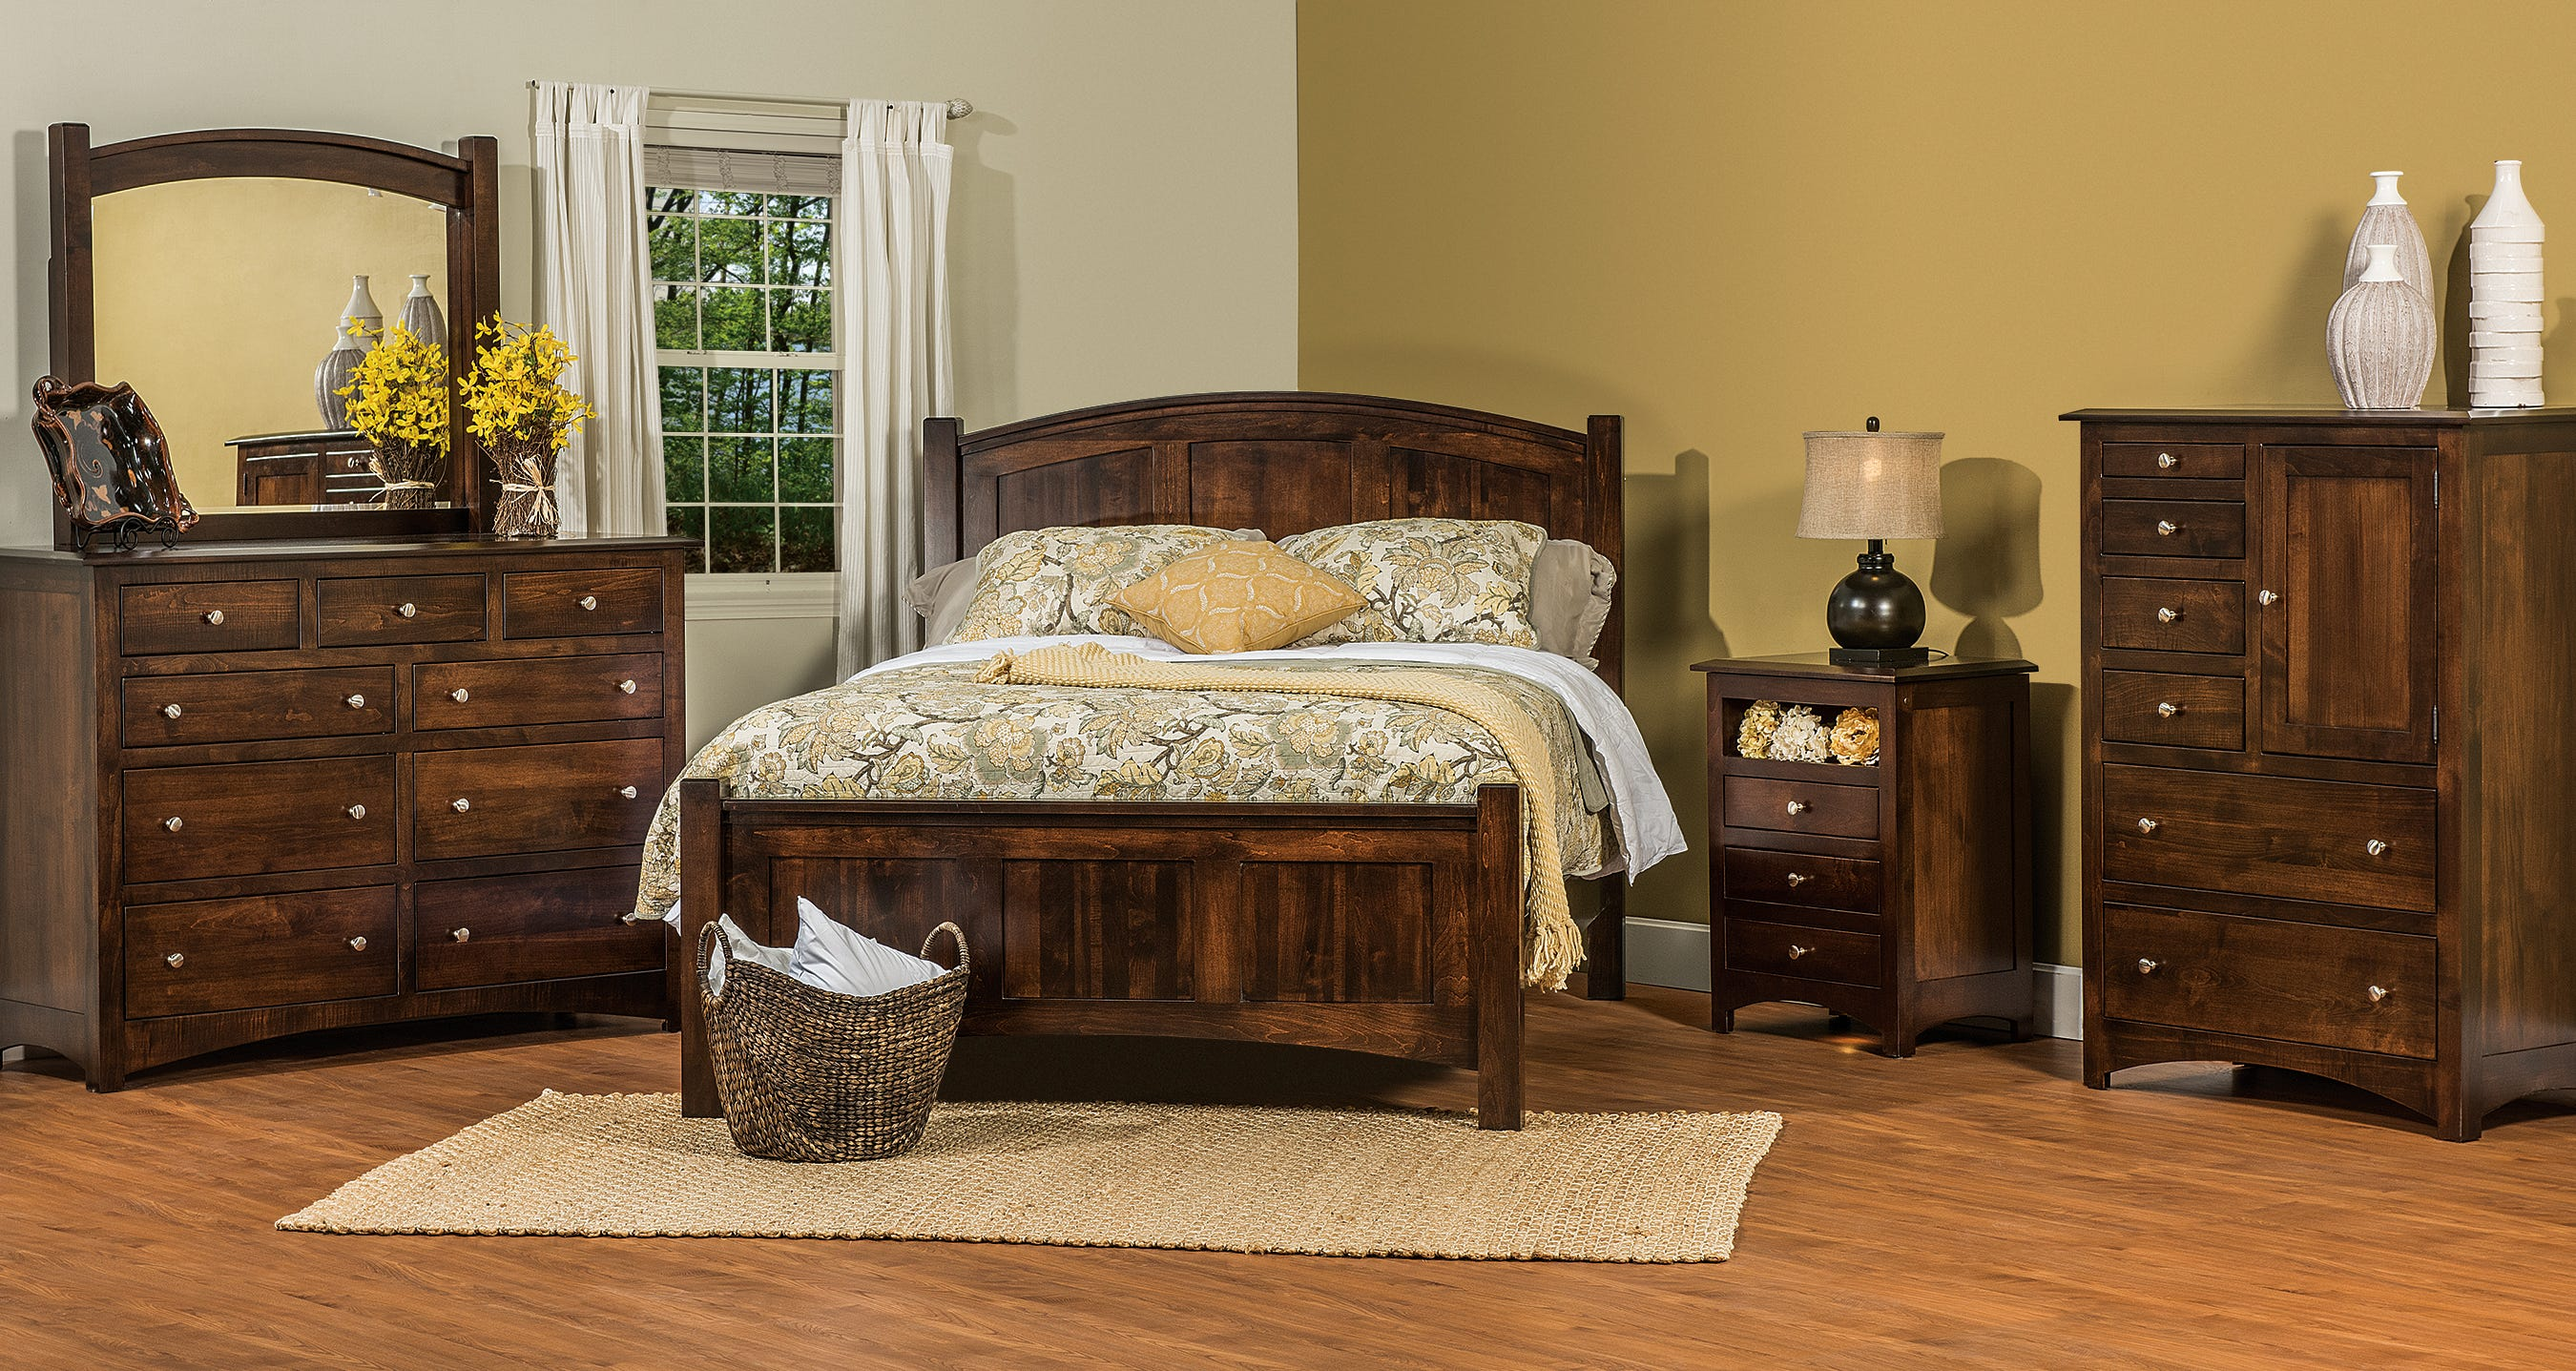 Savings: Amish Hills Furniture